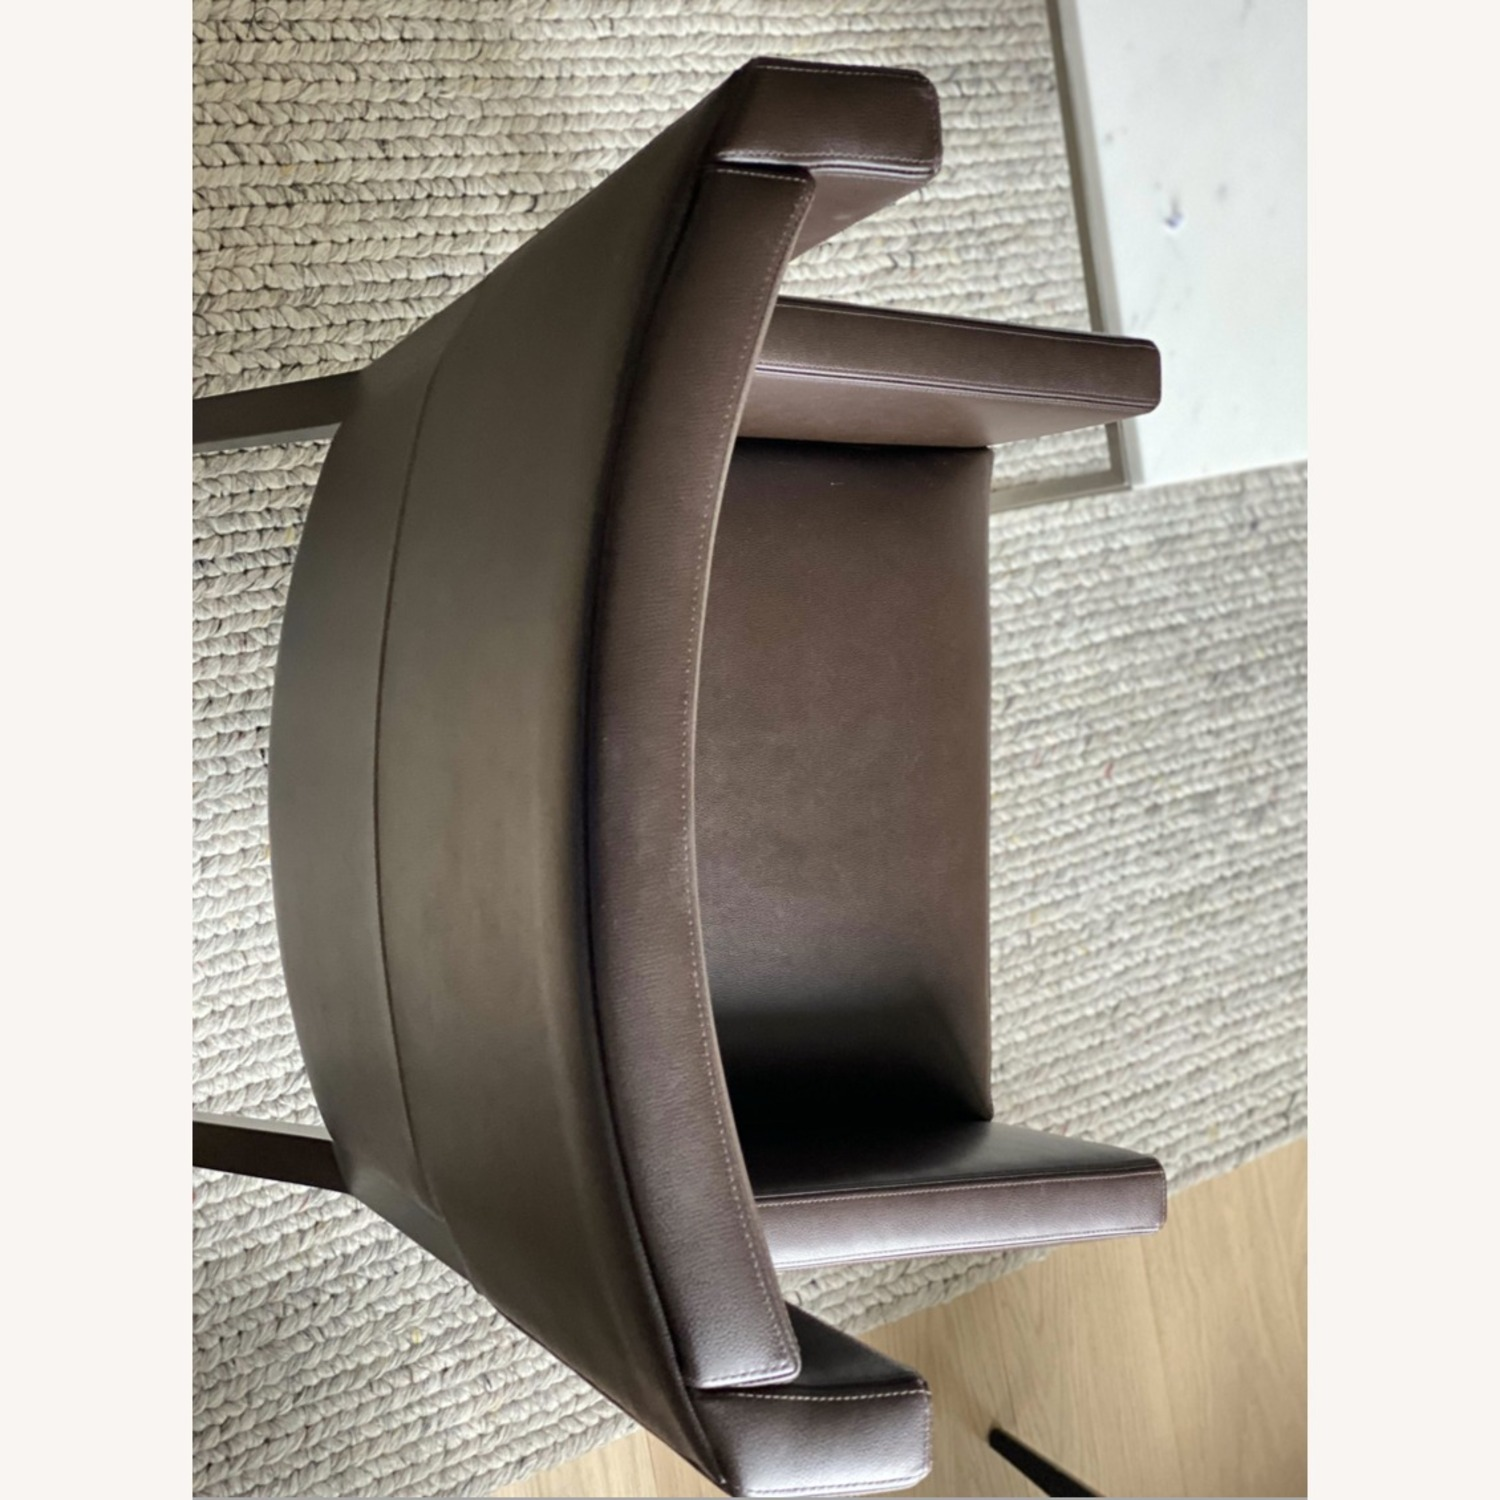 Joseph Juep Dempsey Chair With Arms - image-1